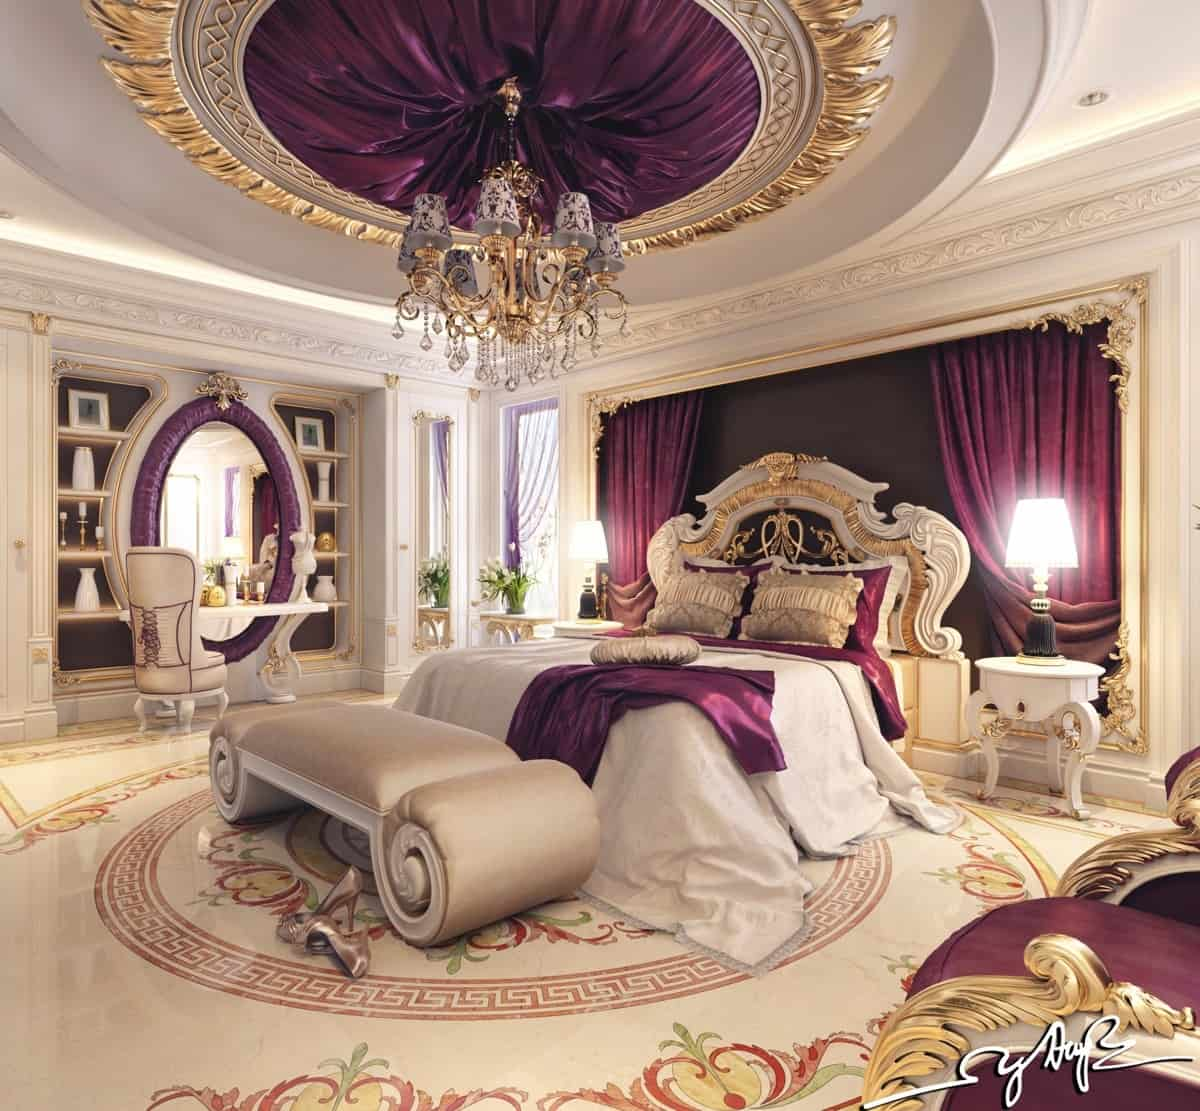 Luxurious Bedrooms You Will Wish To Sleep In